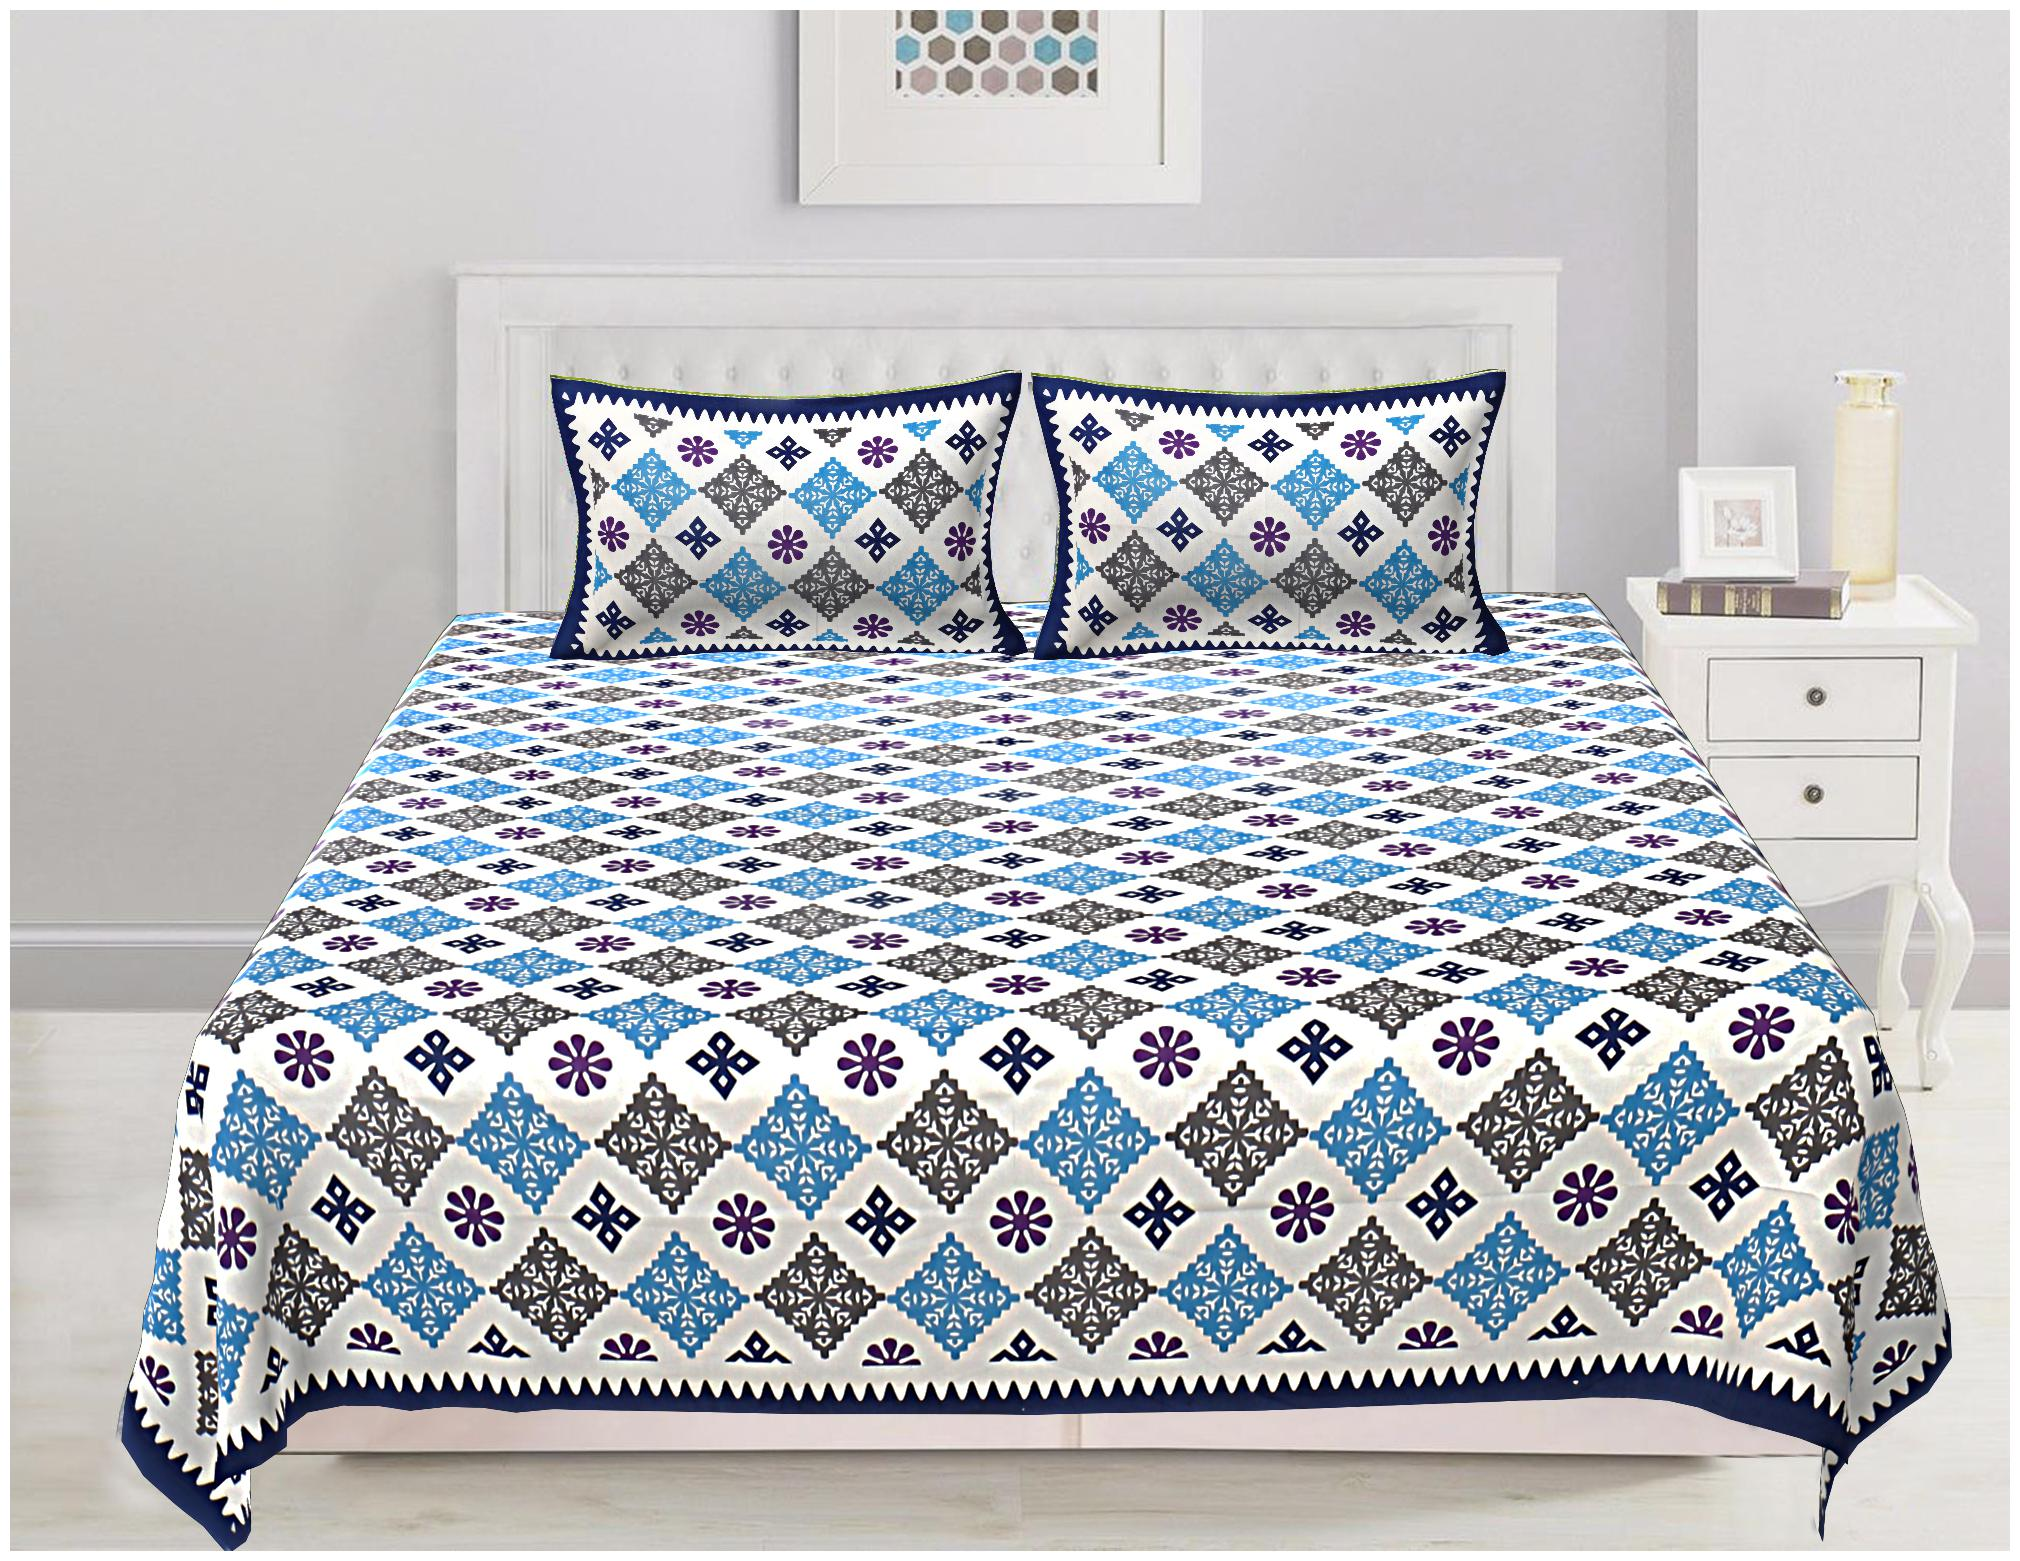 https://assetscdn1.paytm.com/images/catalog/product/H/HO/HOMTEXSTYLERS-1GOPA1067666F202600D/1577065333099_0..jpg